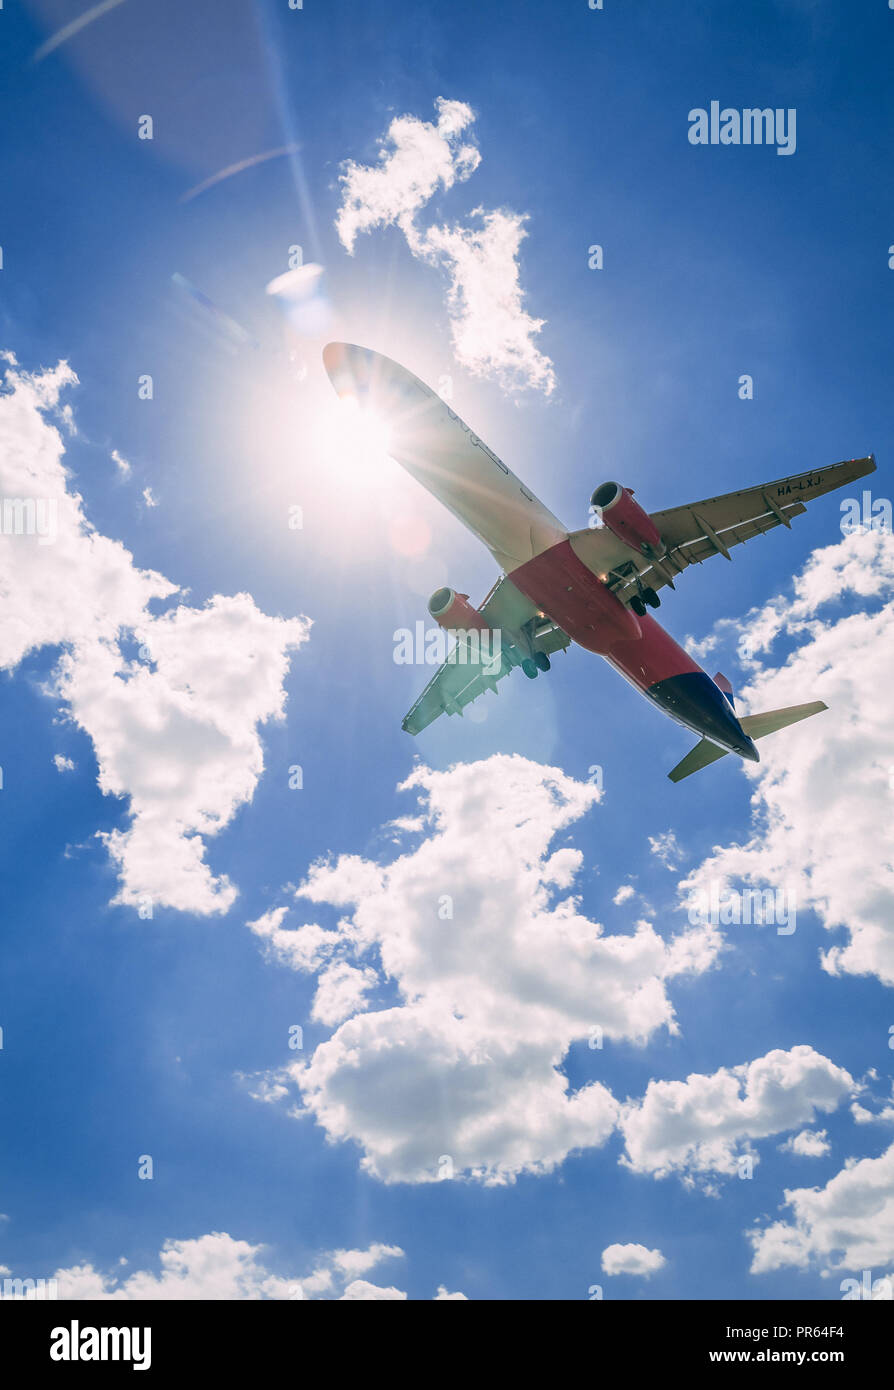 Airplane landing, view from bellow - Stock Image